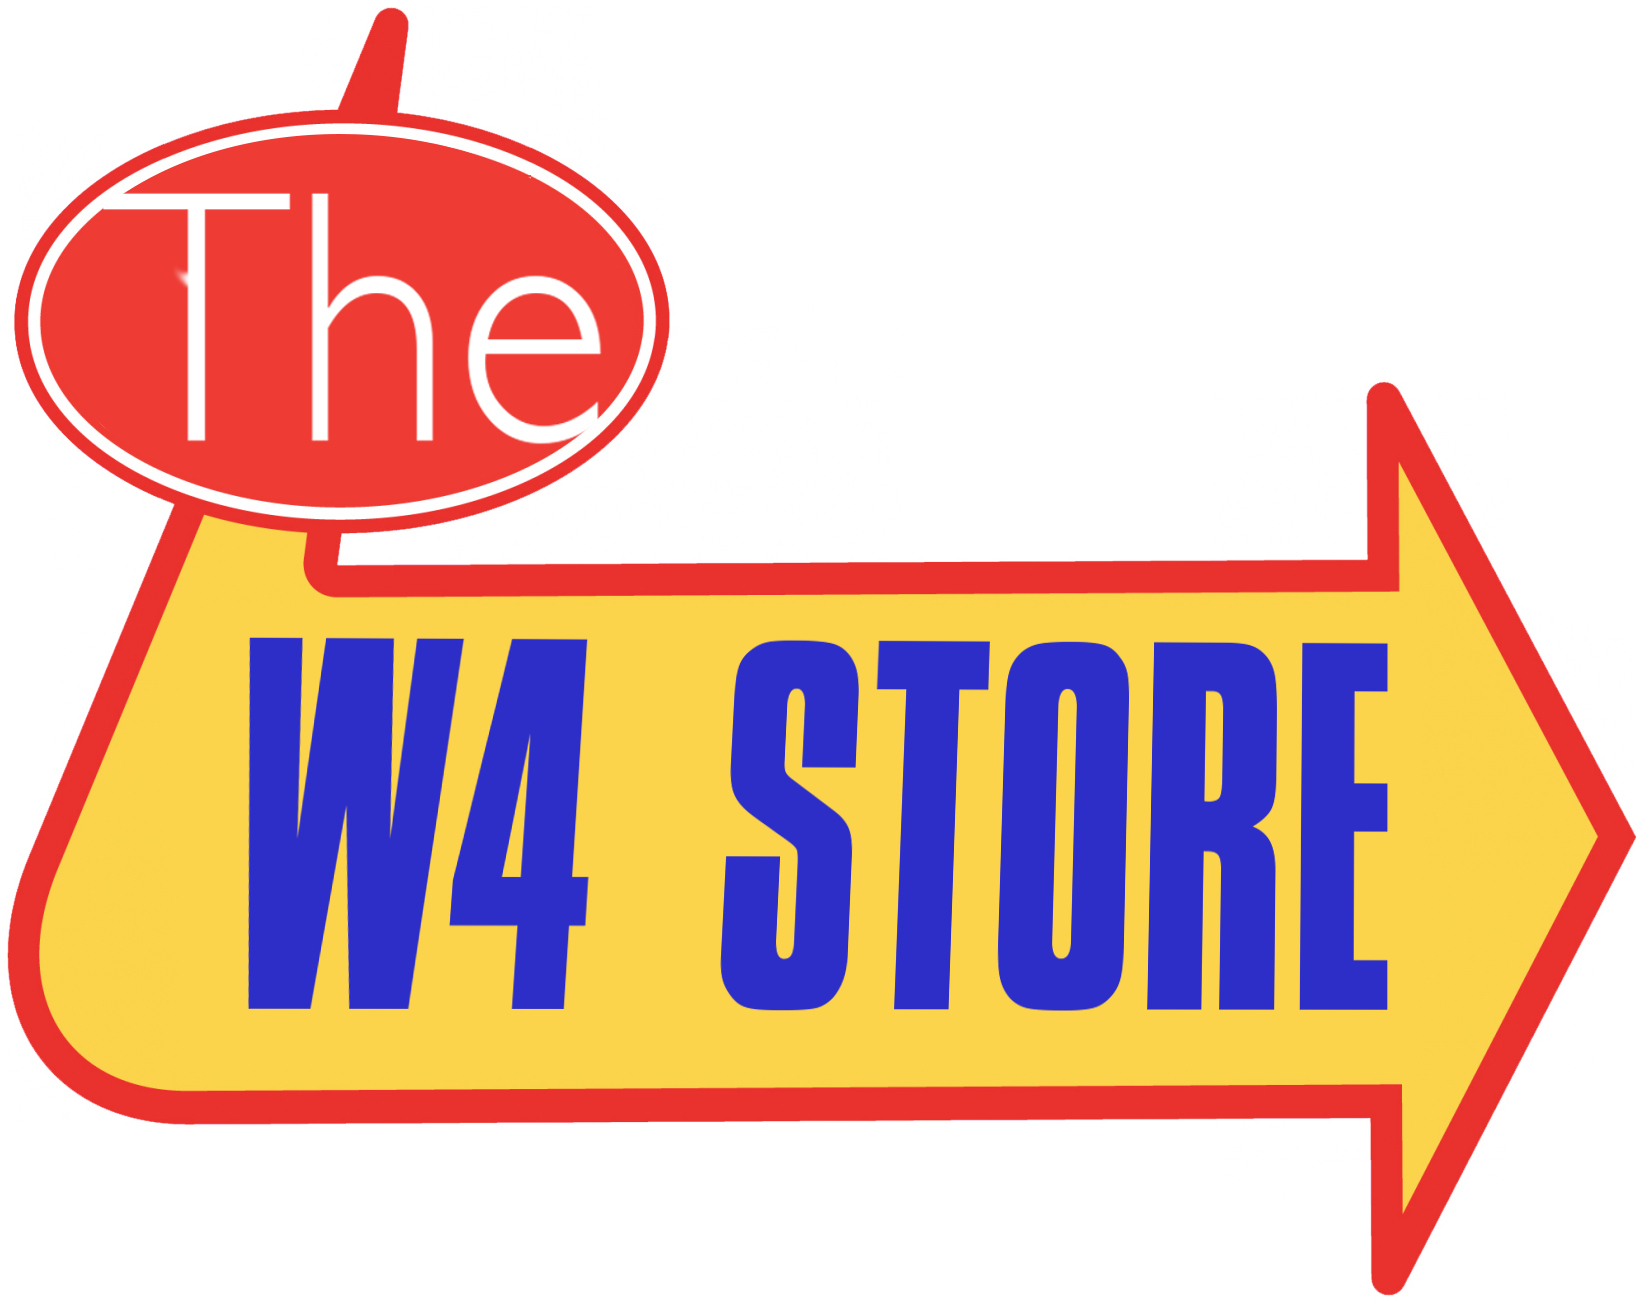 The Warped Four Shop